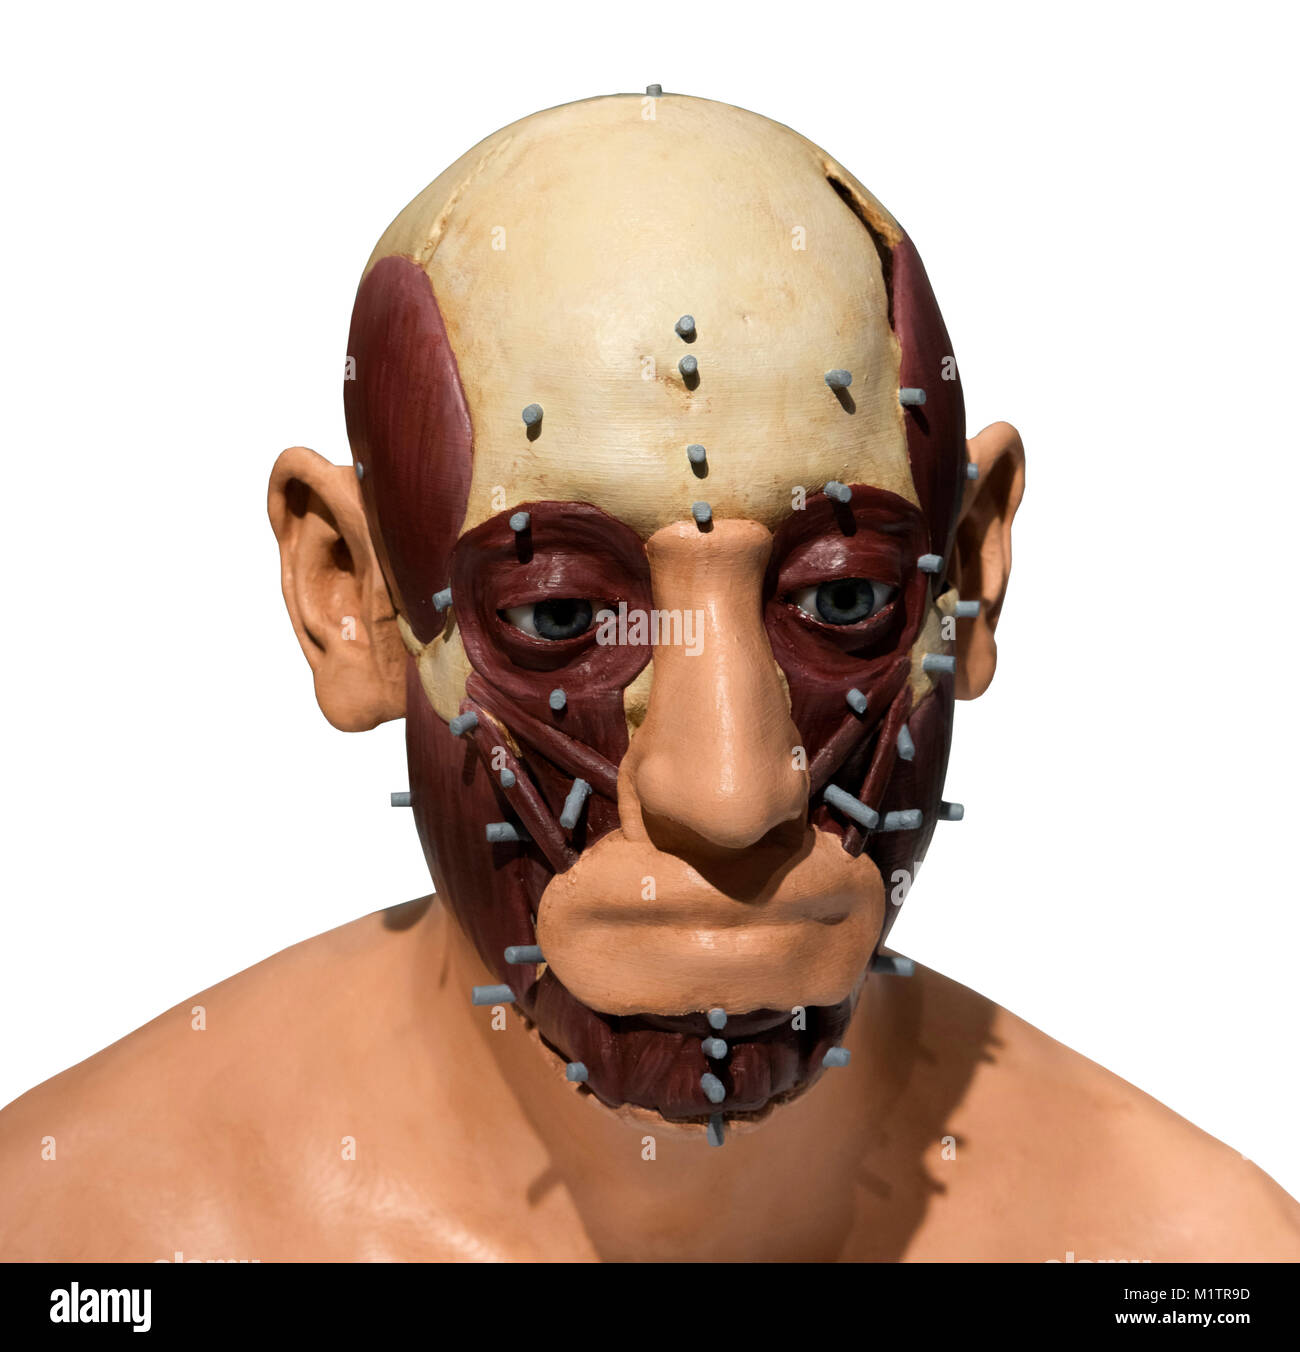 Partial facial reconstruction of the head of Richard III by Caroline Wilkinson, King Richard III Visitor Centre, - Stock Image